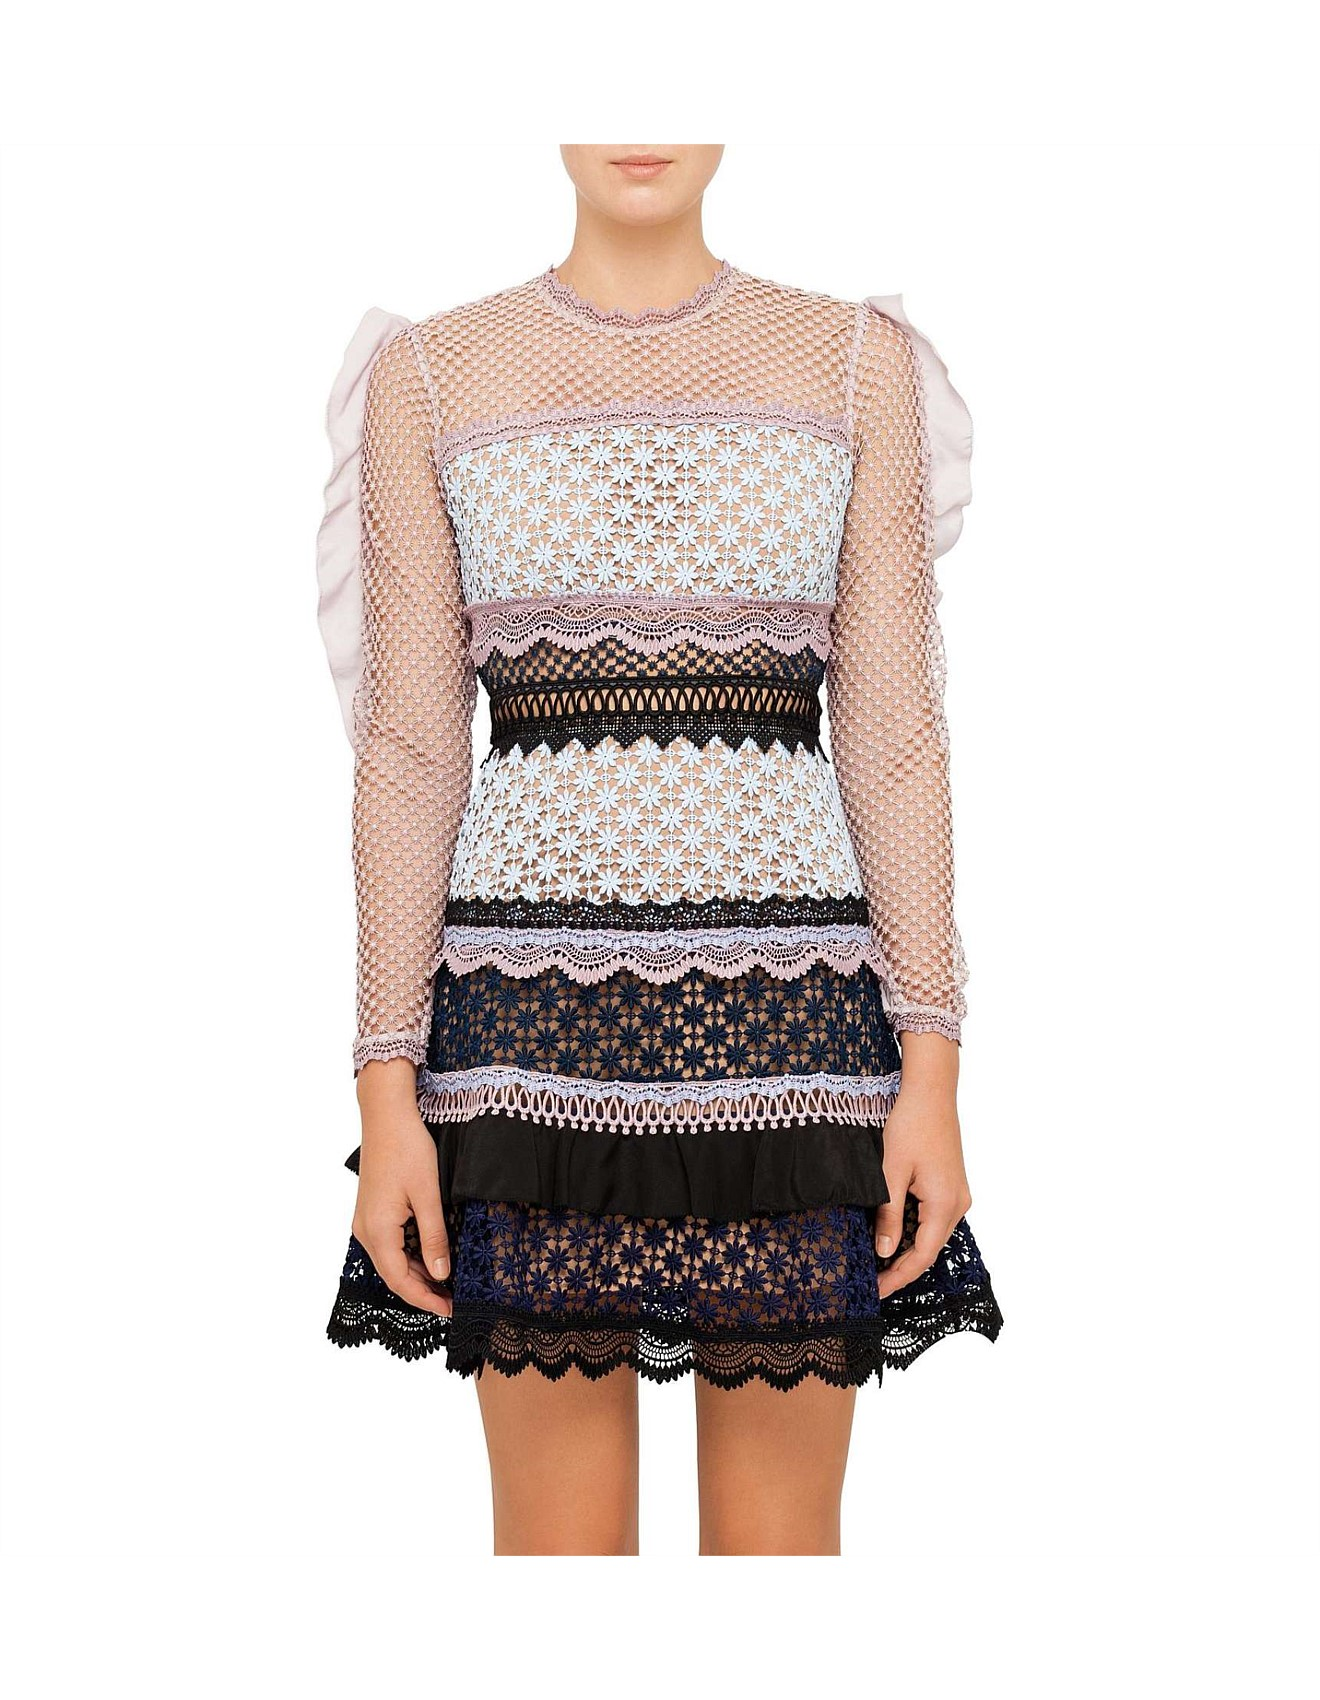 9db0f049c Bellis Lace Trim Dress With Frilled Sleeves